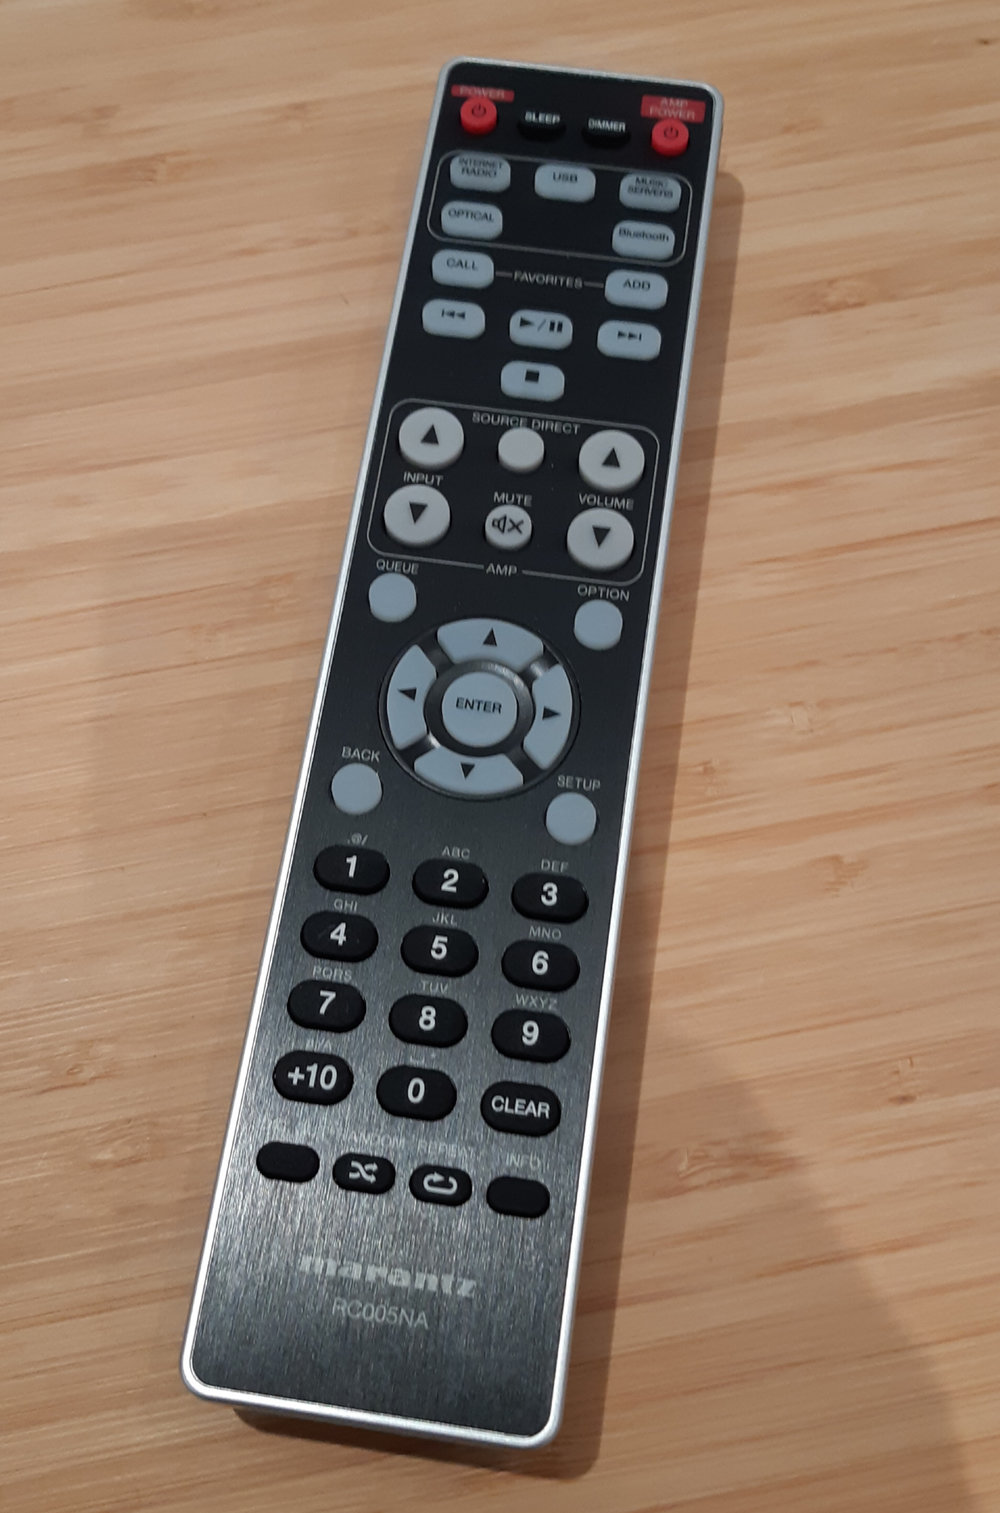 A good, old fashioned remote control makes operation a breeze.